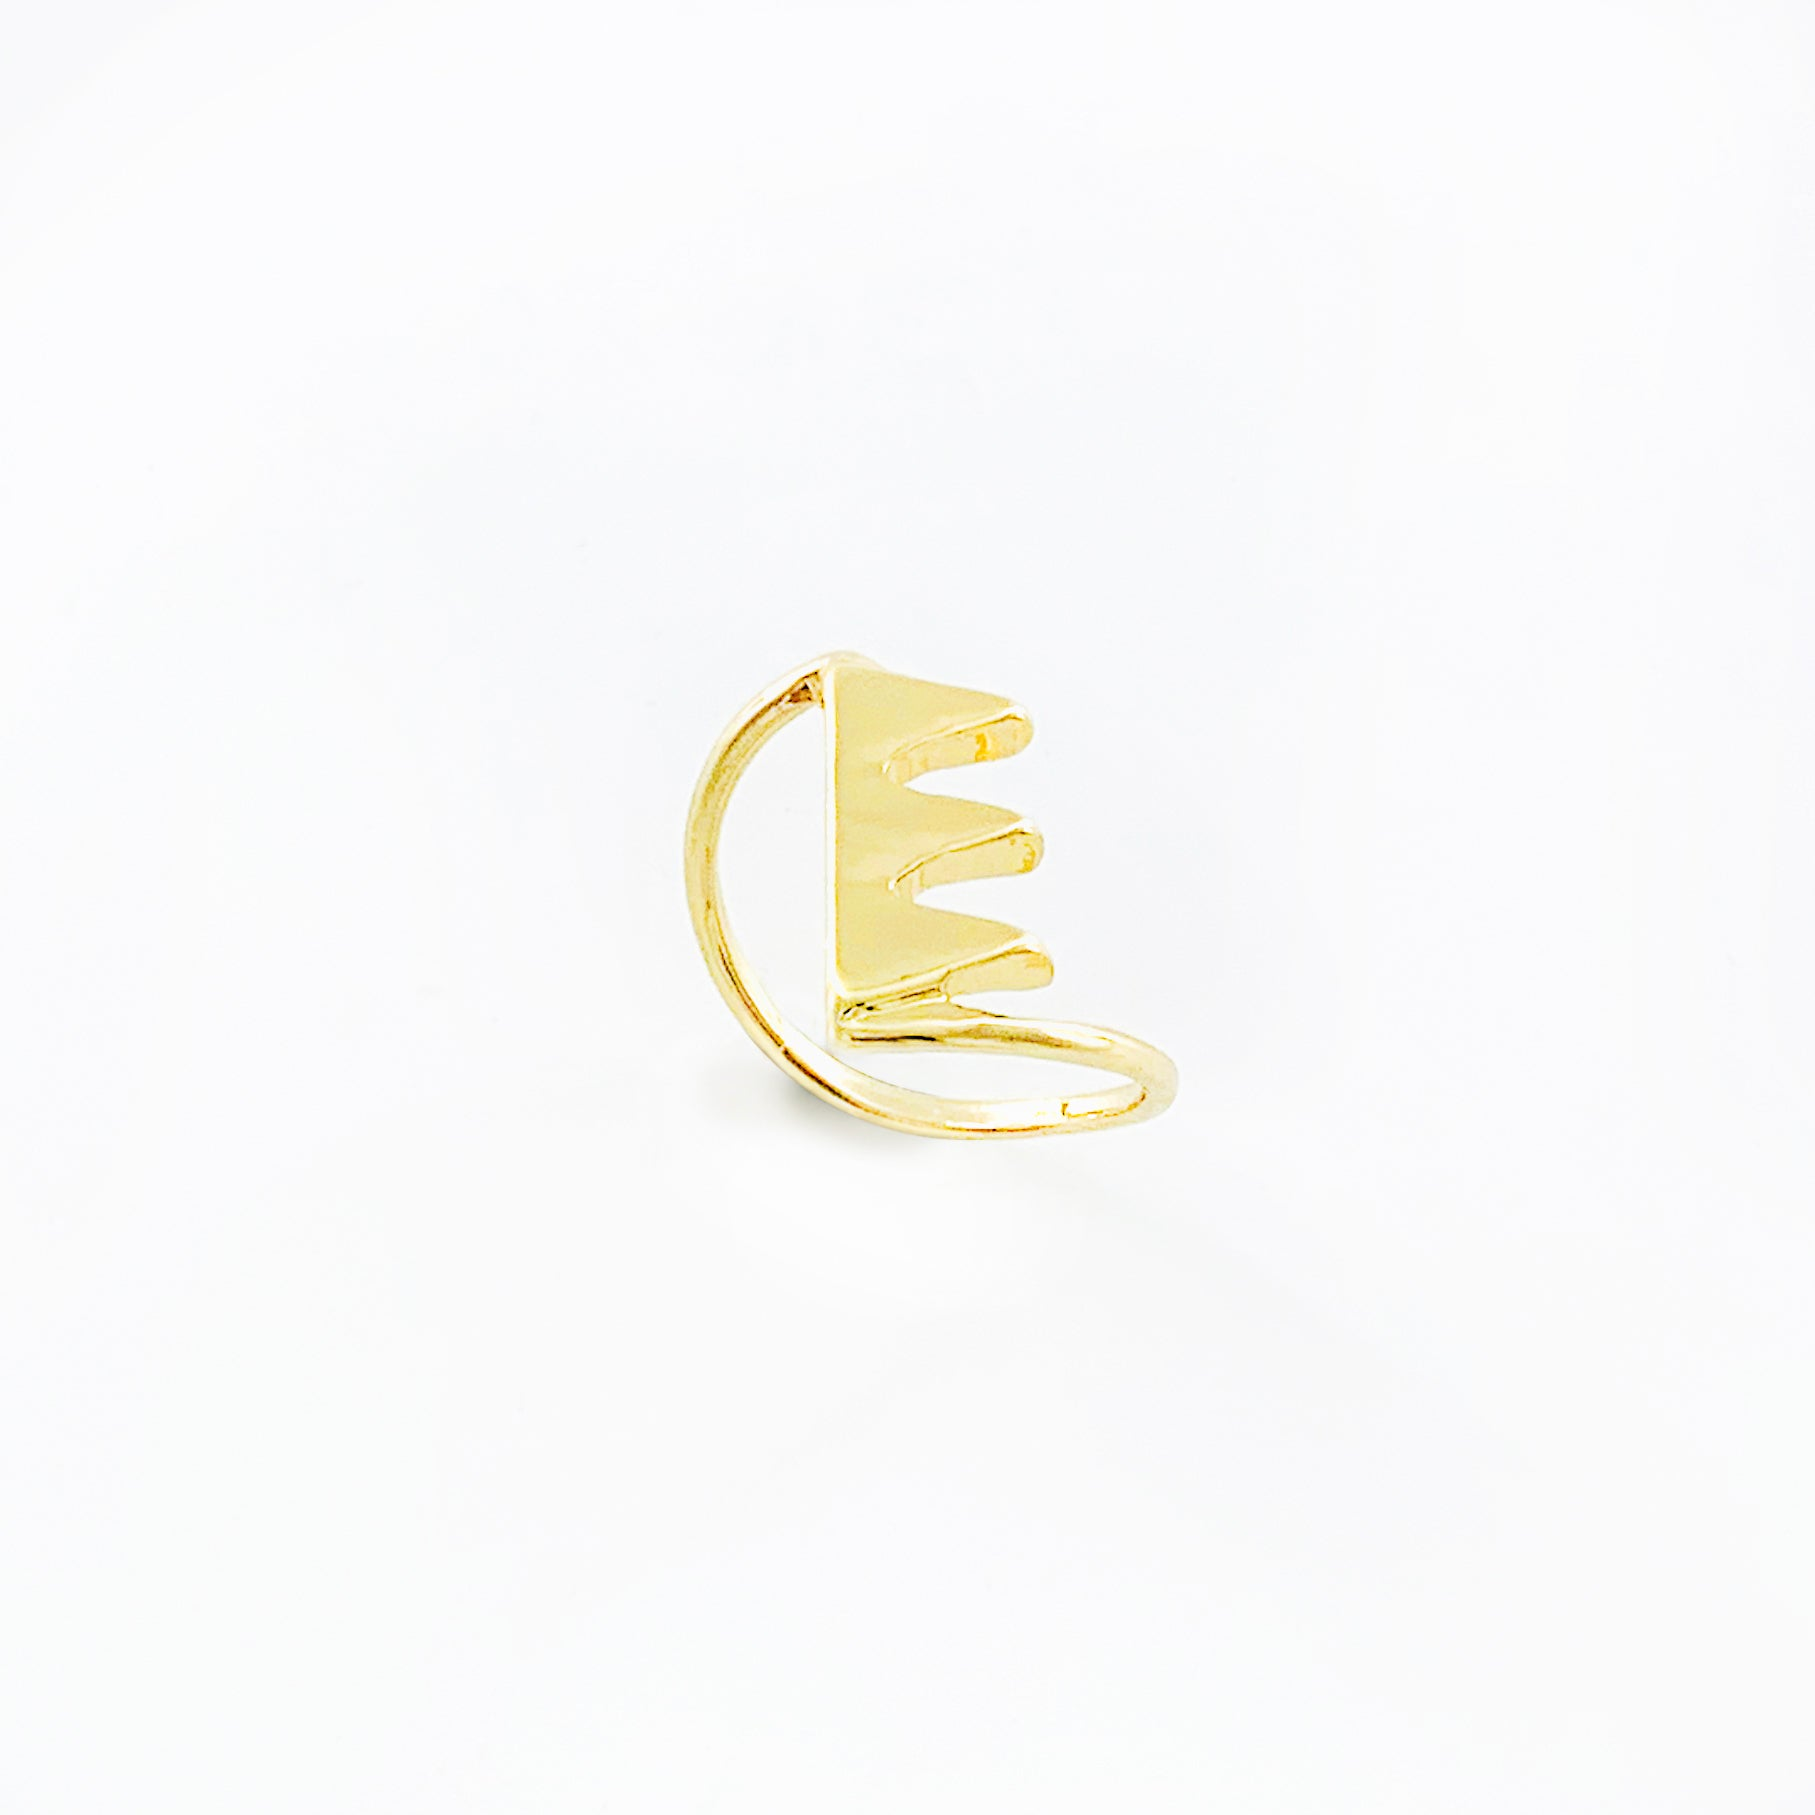 Gold ring with jagged tooth design